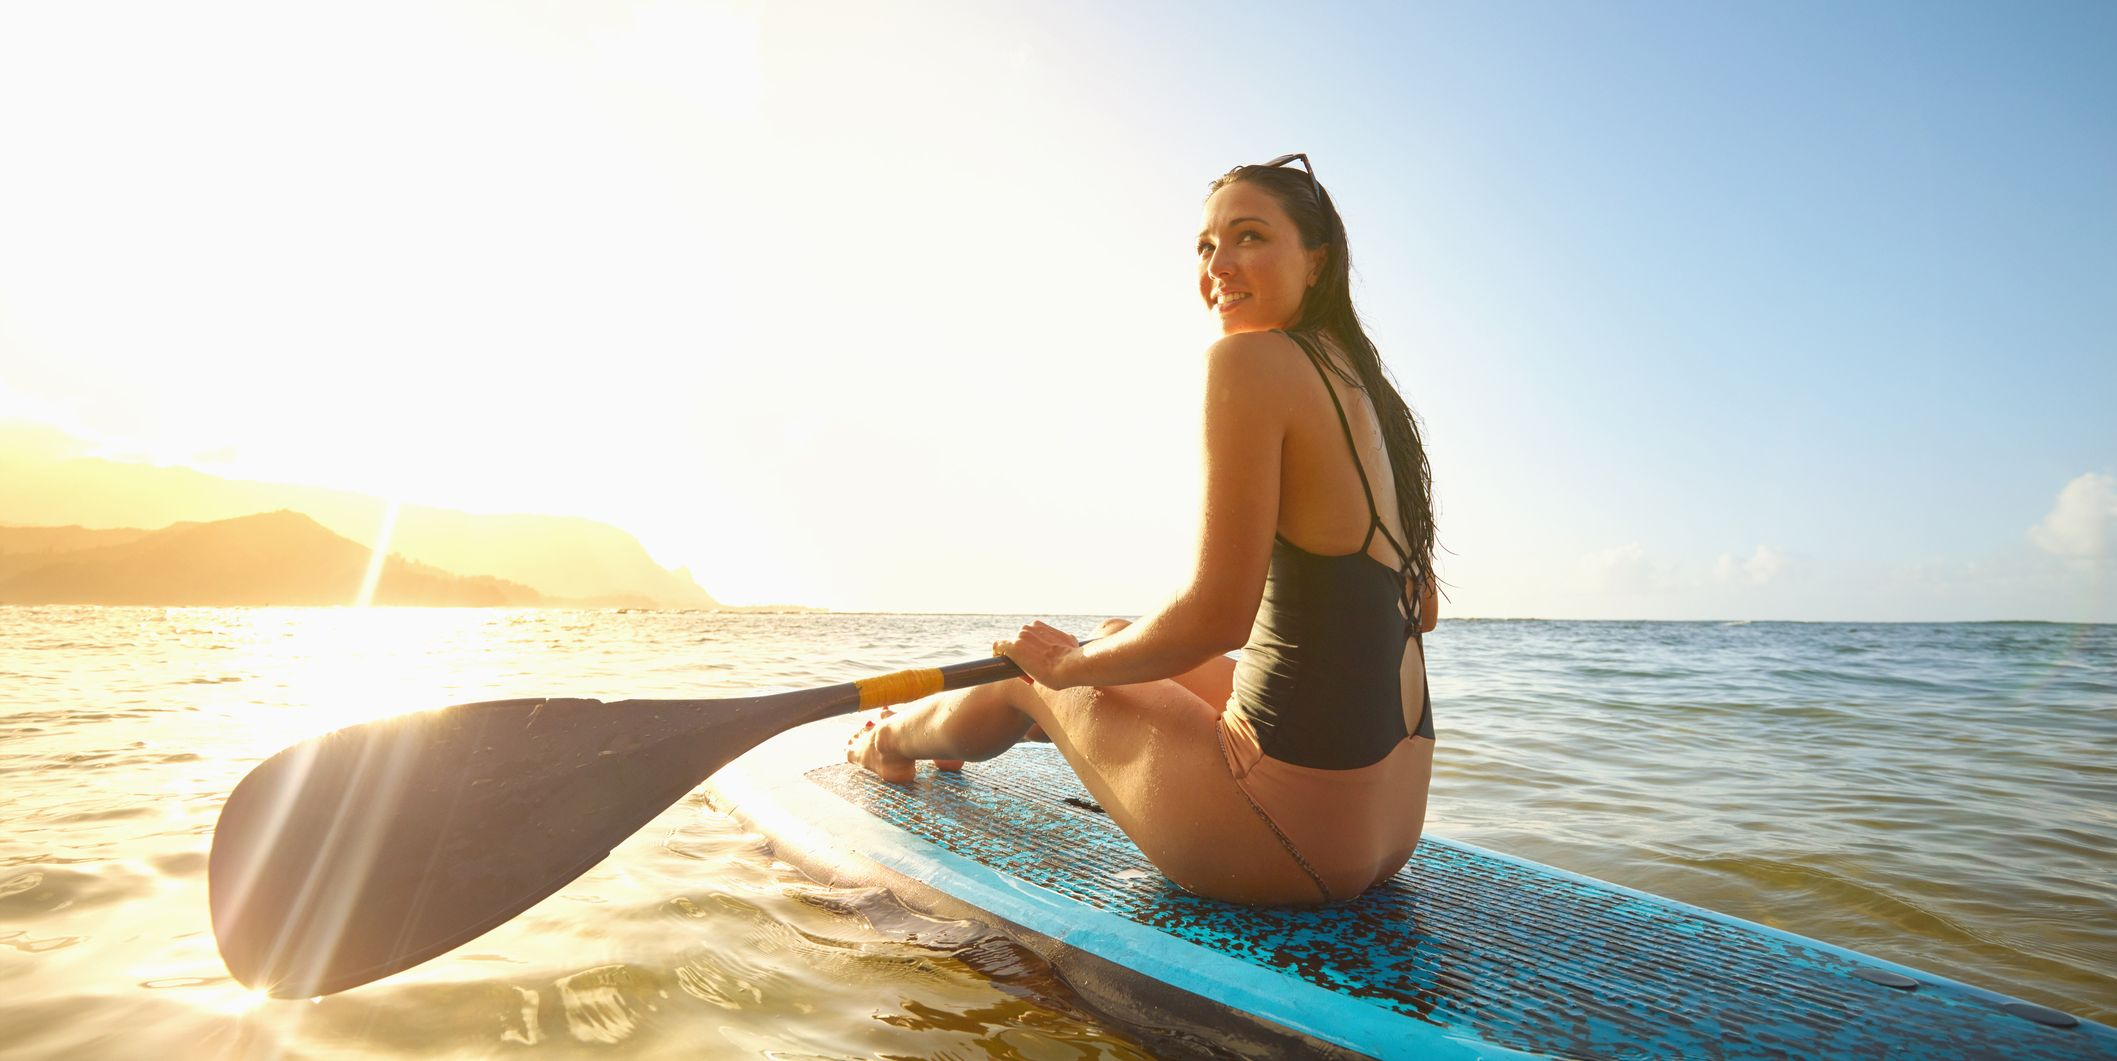 Mixed Race woman sitting on paddleboard in ocean